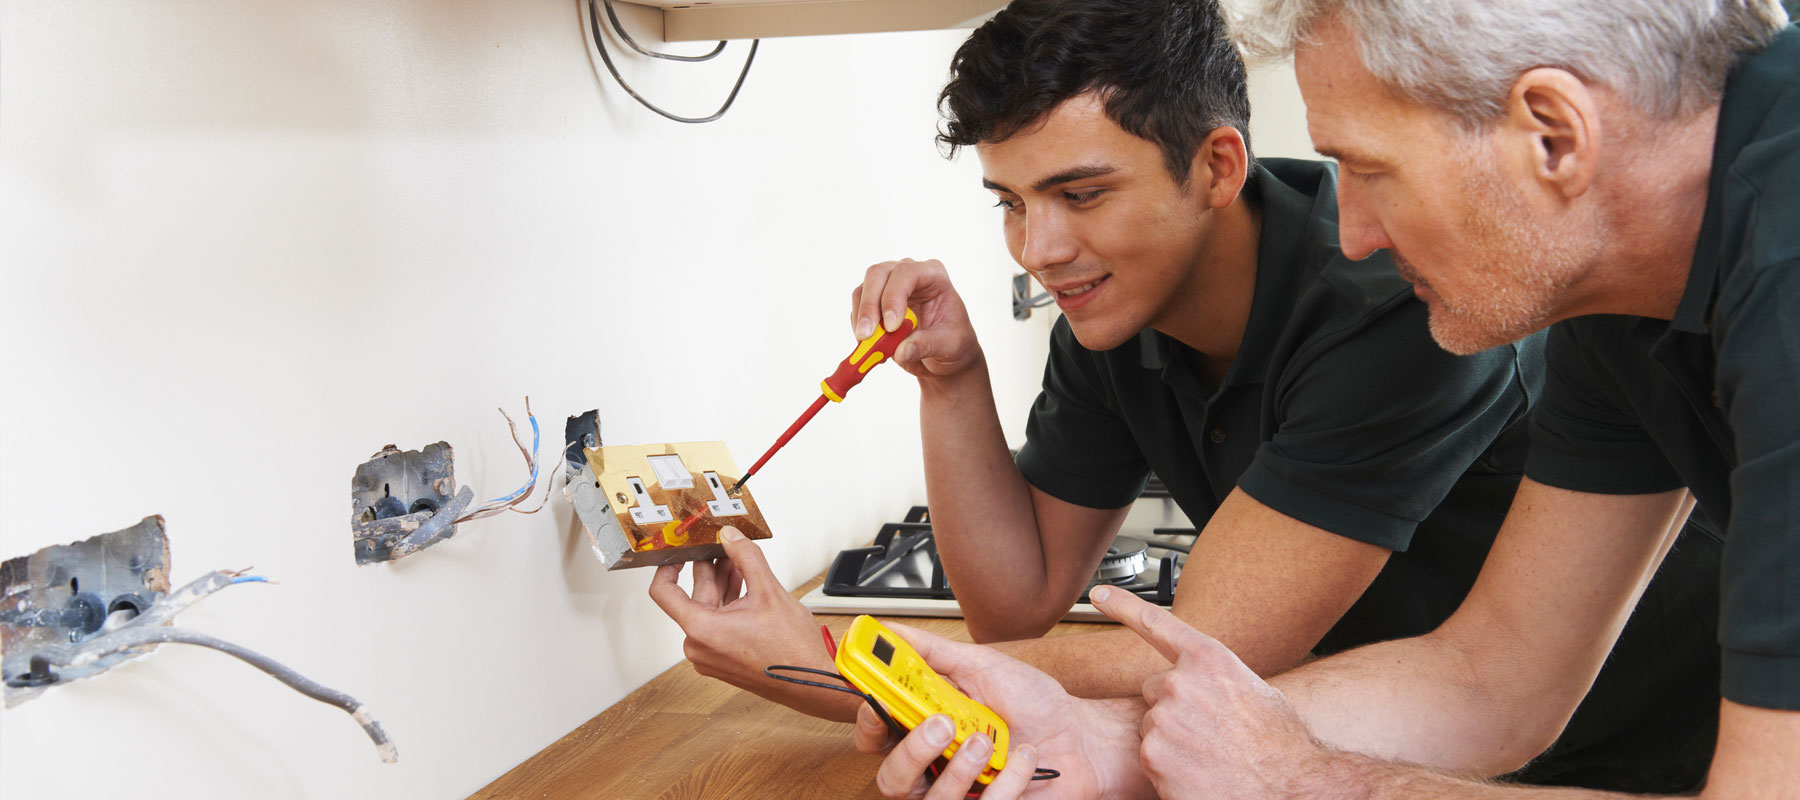 Commercial Electrical Services Agoura hills   US Electrical